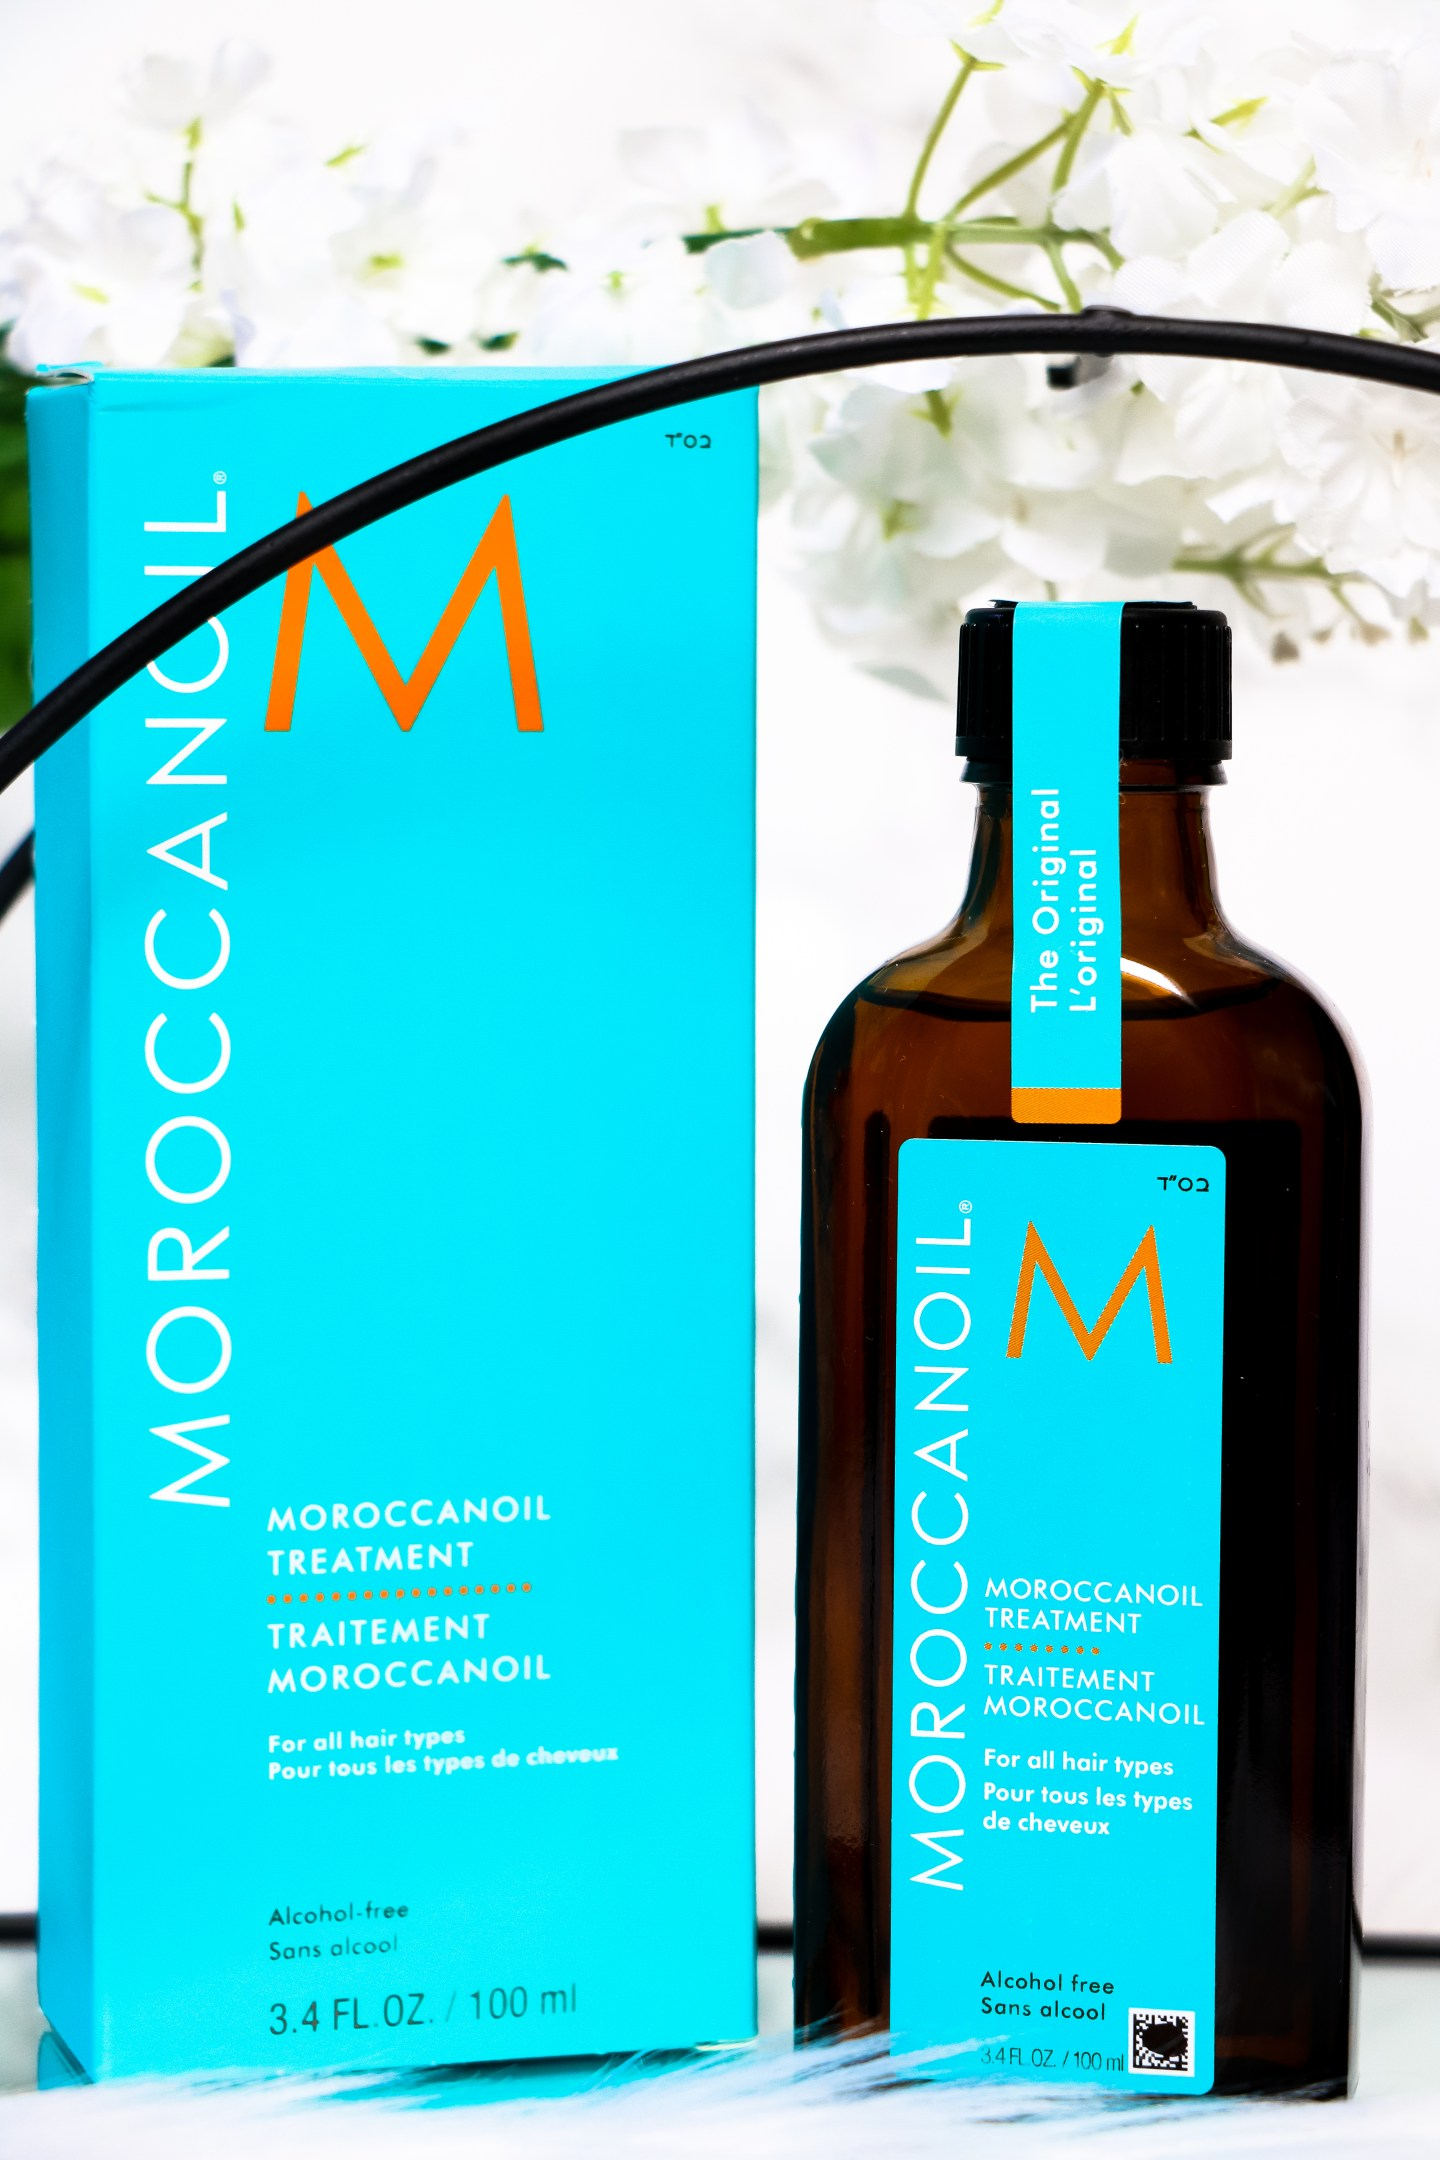 MOROCCANOIL TREATMENT | WORTH THE HYPE?